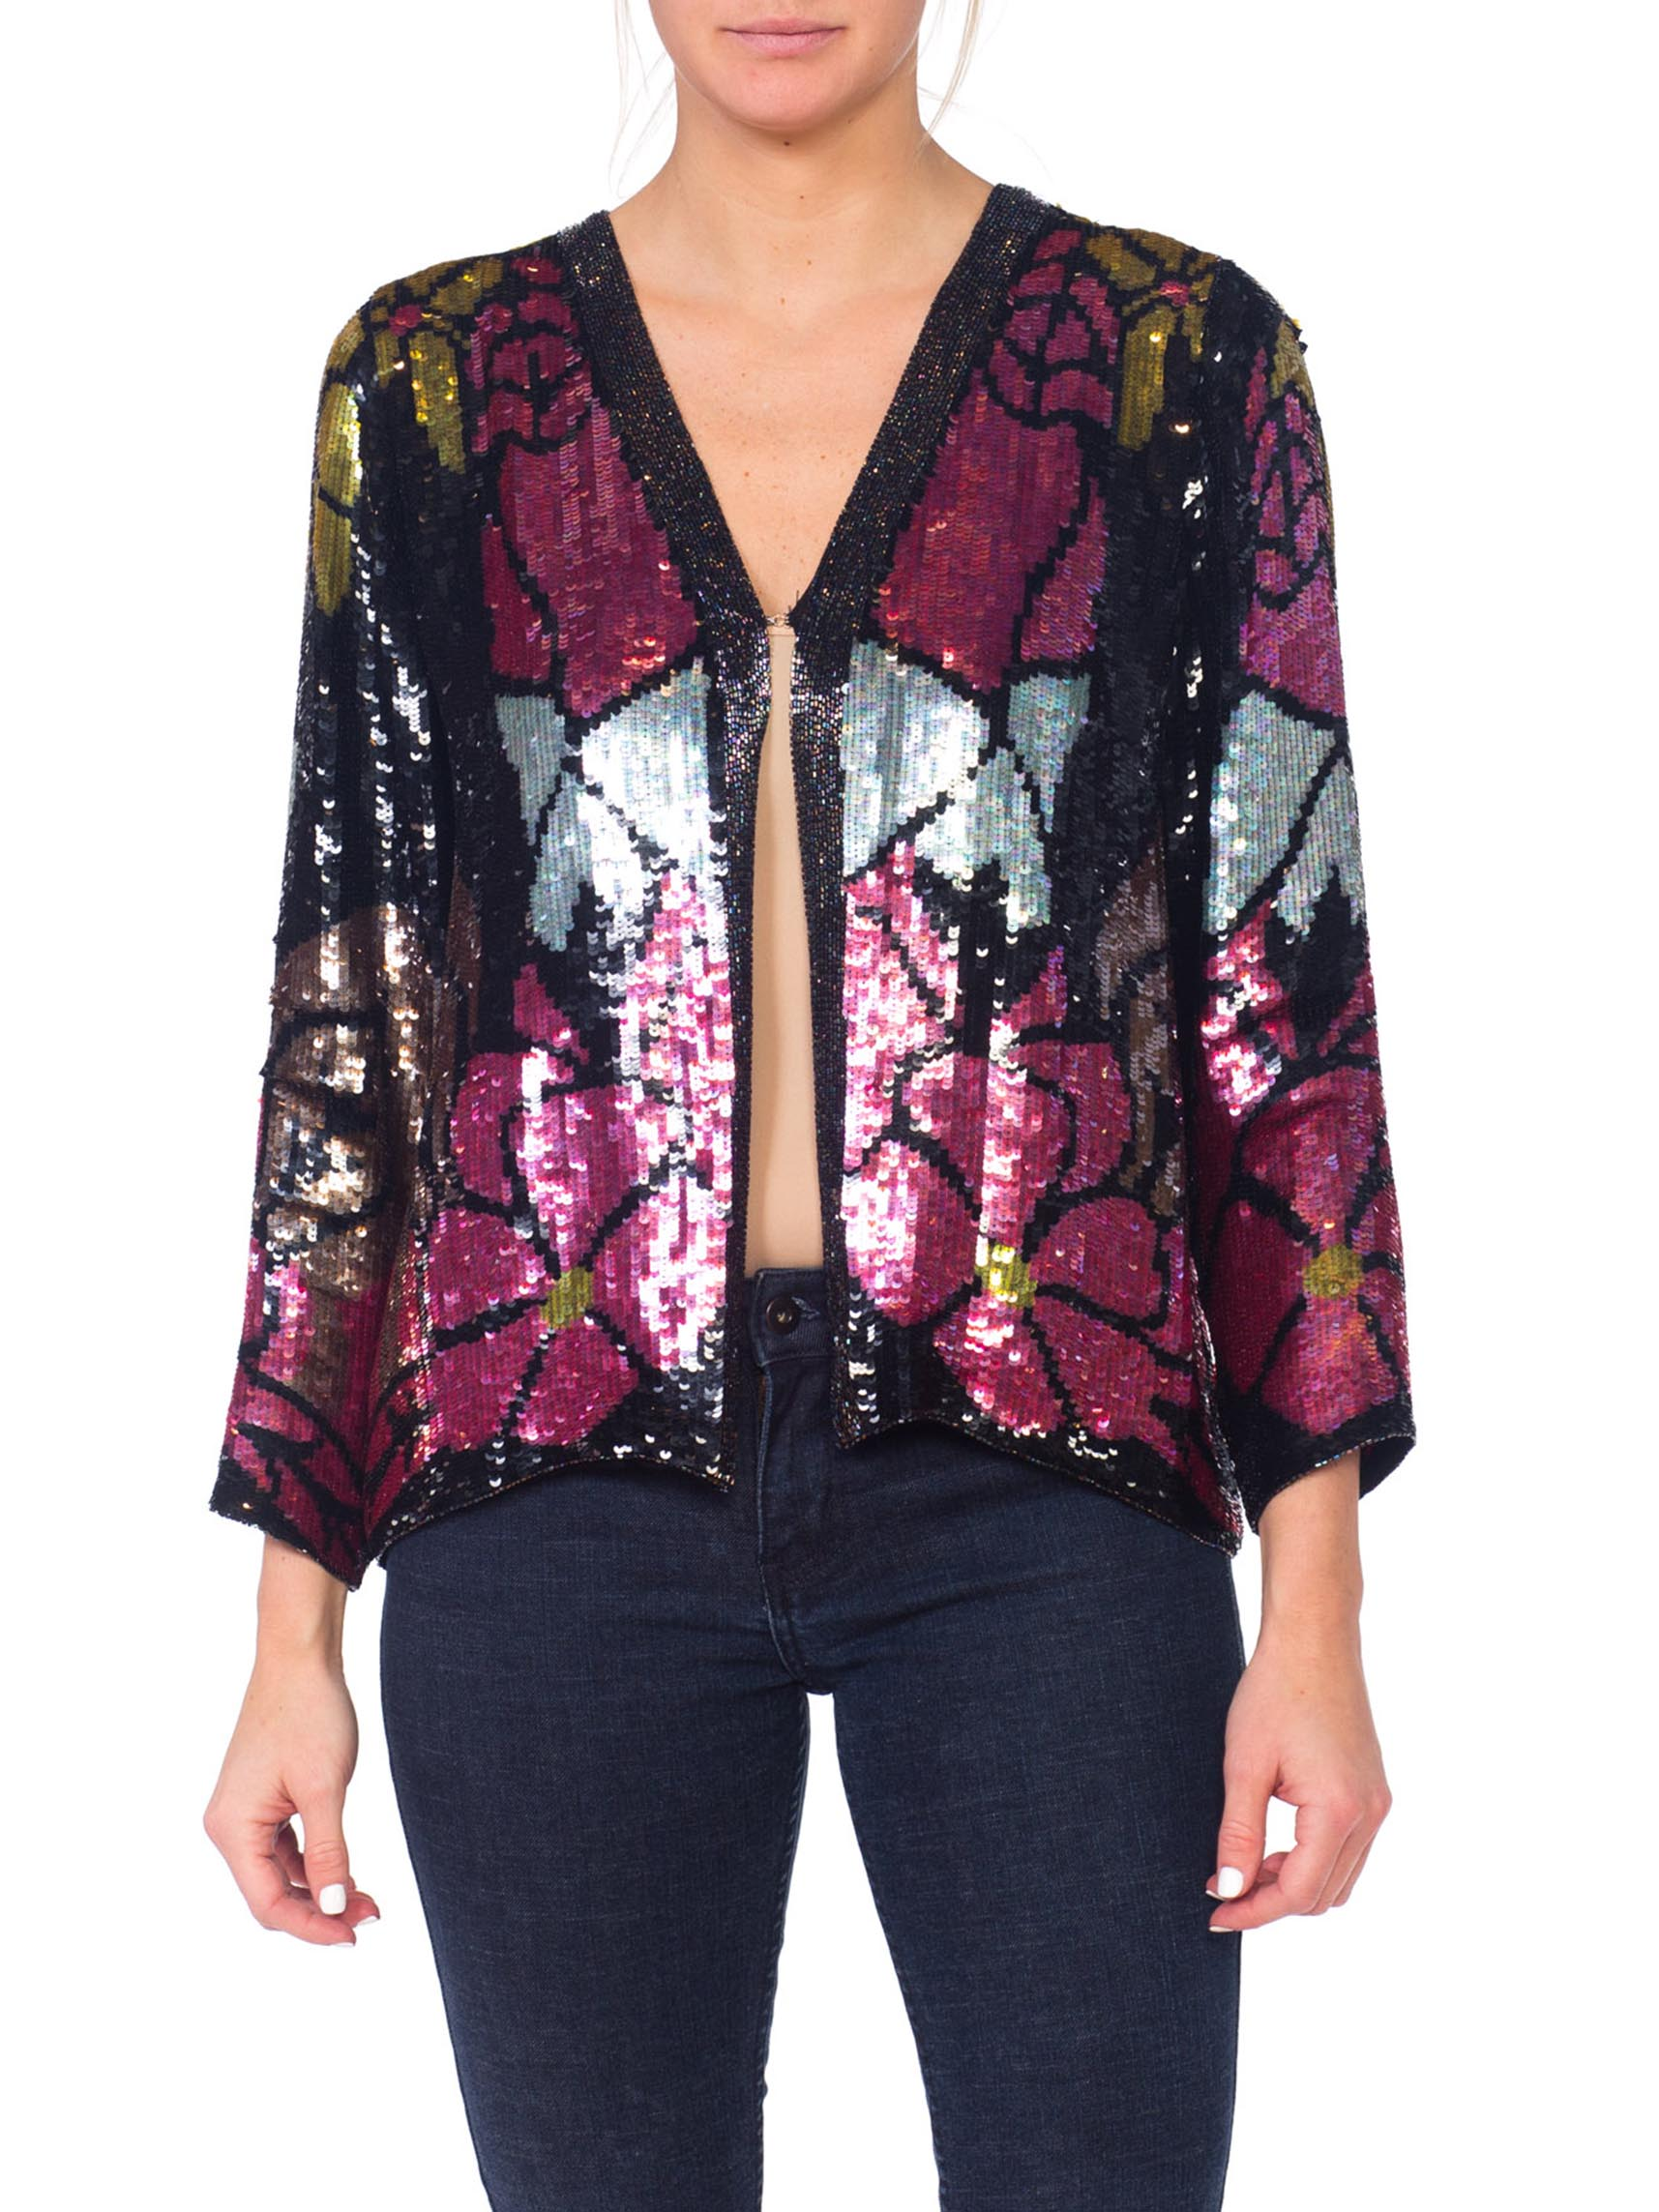 1970S Halston Style Black Silk Art Deco Floral Stained Glass Sequin Jacket